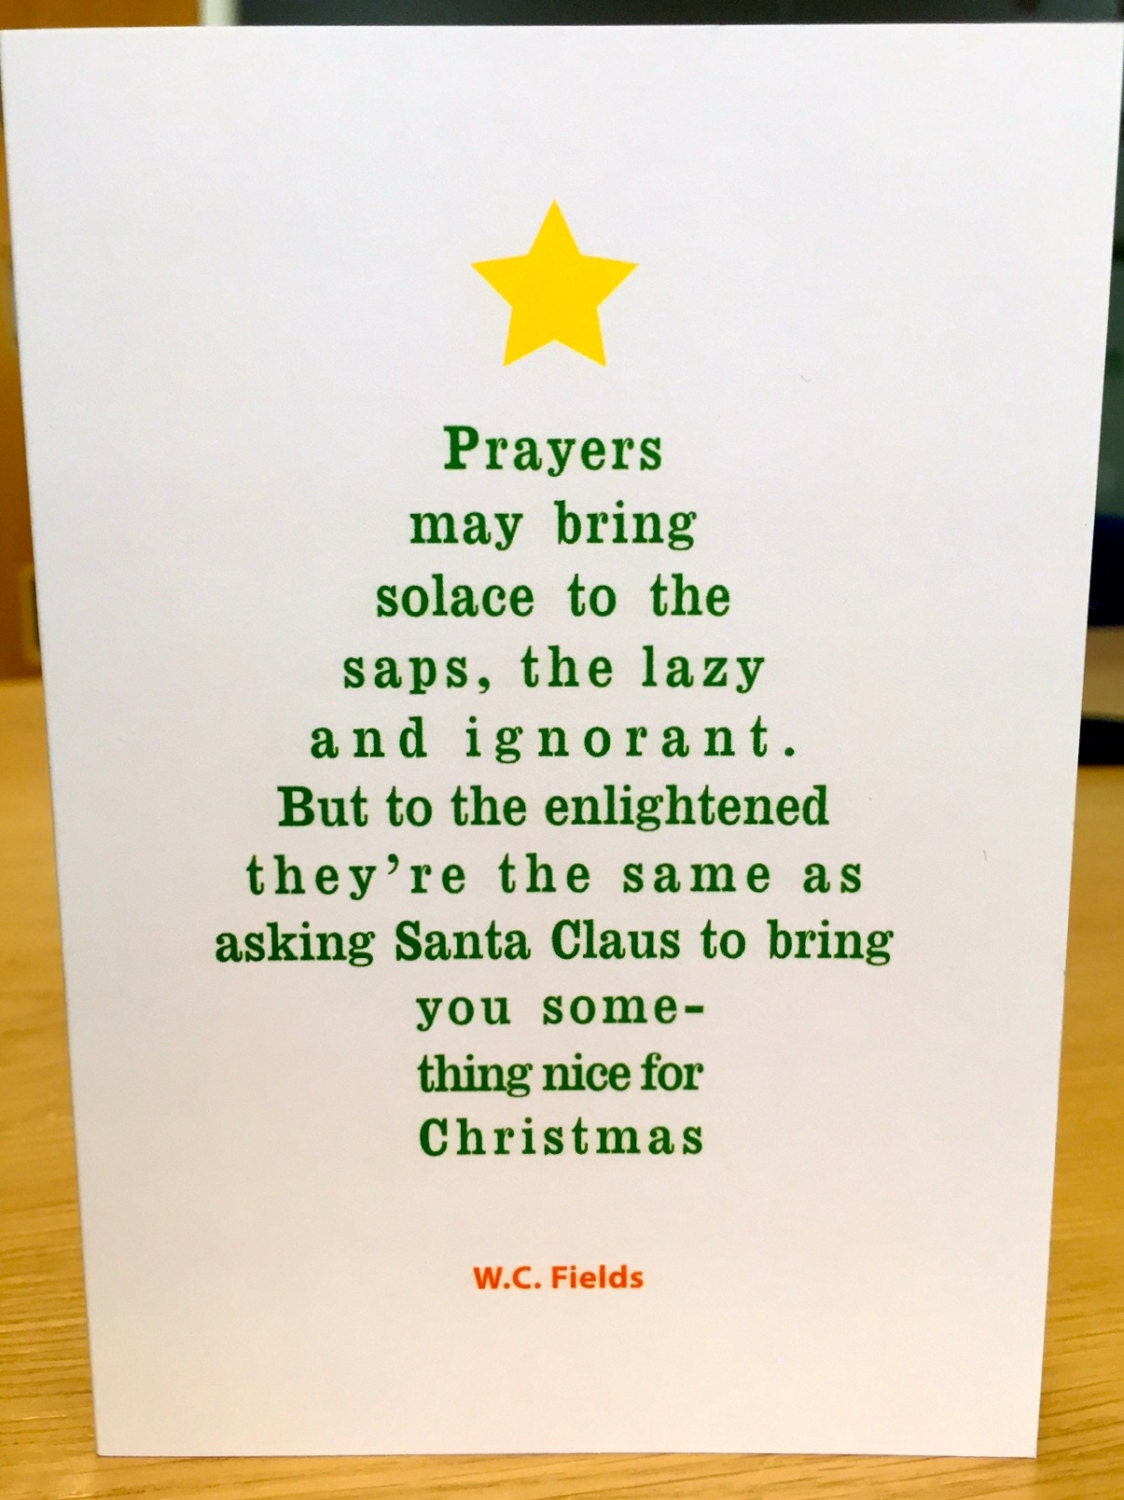 Heathens greetings wc fields quote atheistalternative christmas heathens greetings wc fields quote atheistalternative christmas card m4hsunfo